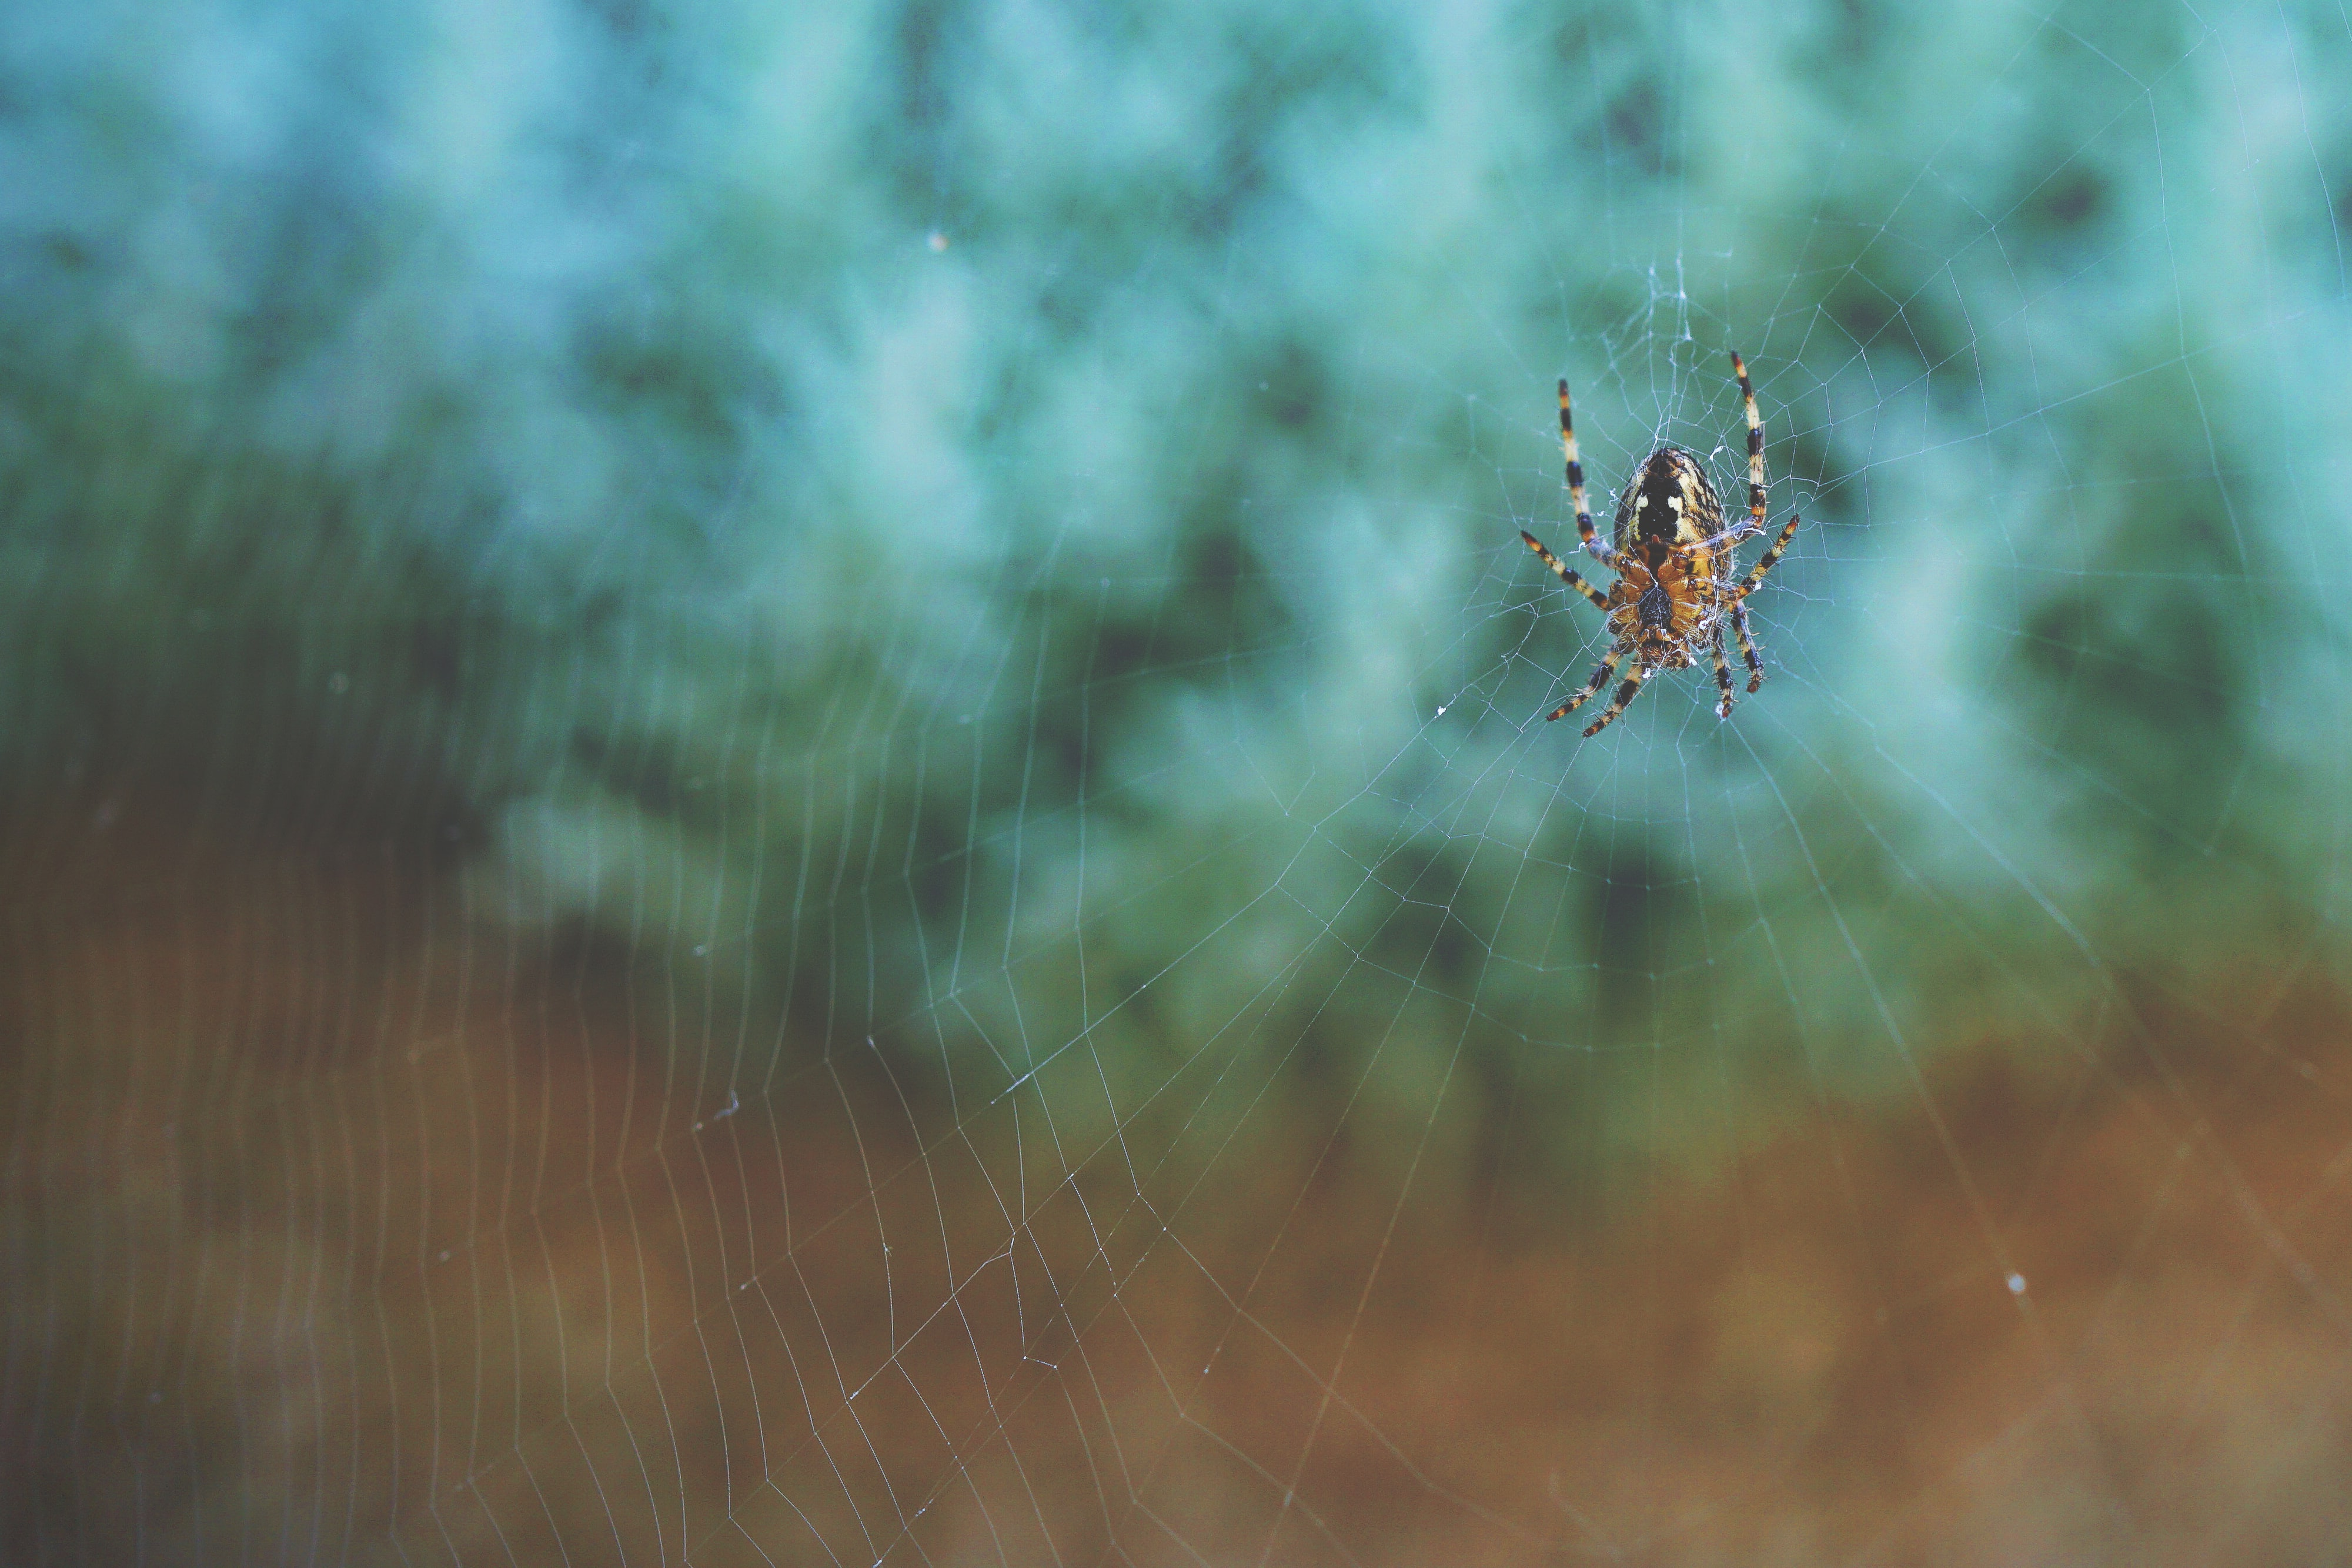 A macro view of a spider on a spider web